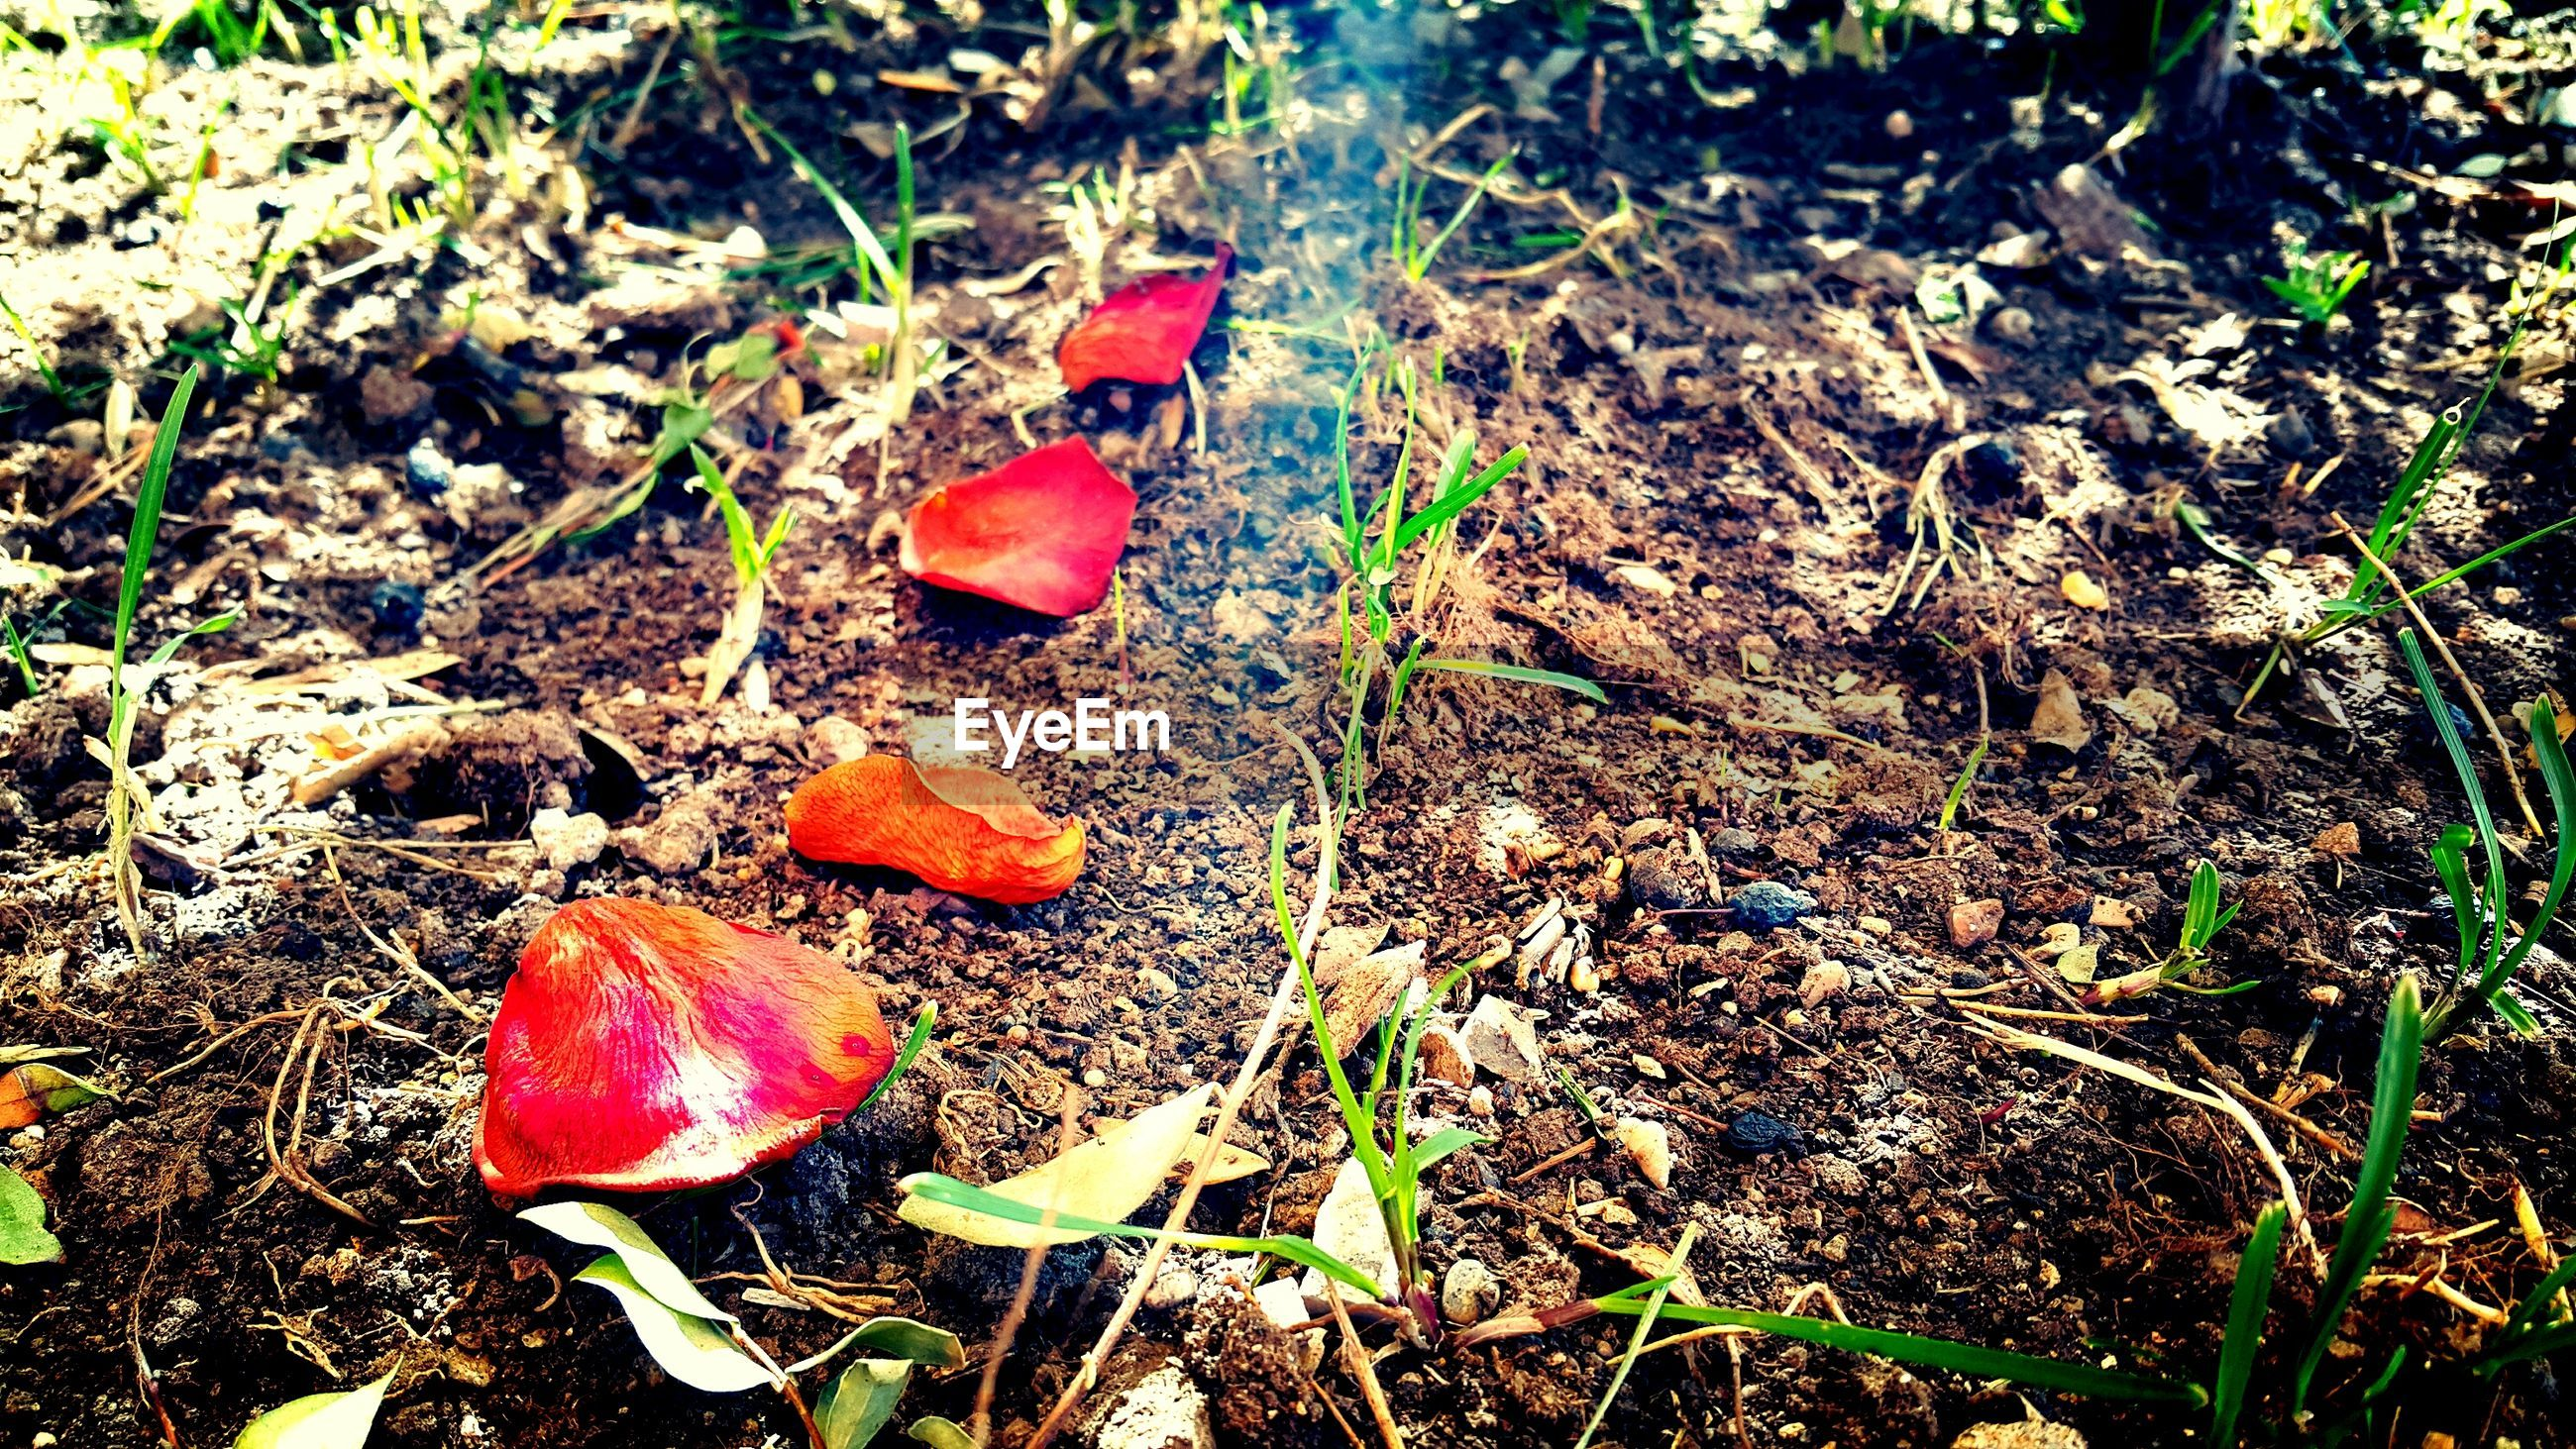 high angle view, leaf, grass, field, plant, dry, nature, red, growth, autumn, day, fallen, close-up, ground, no people, outdoors, change, fragility, dirt, stem